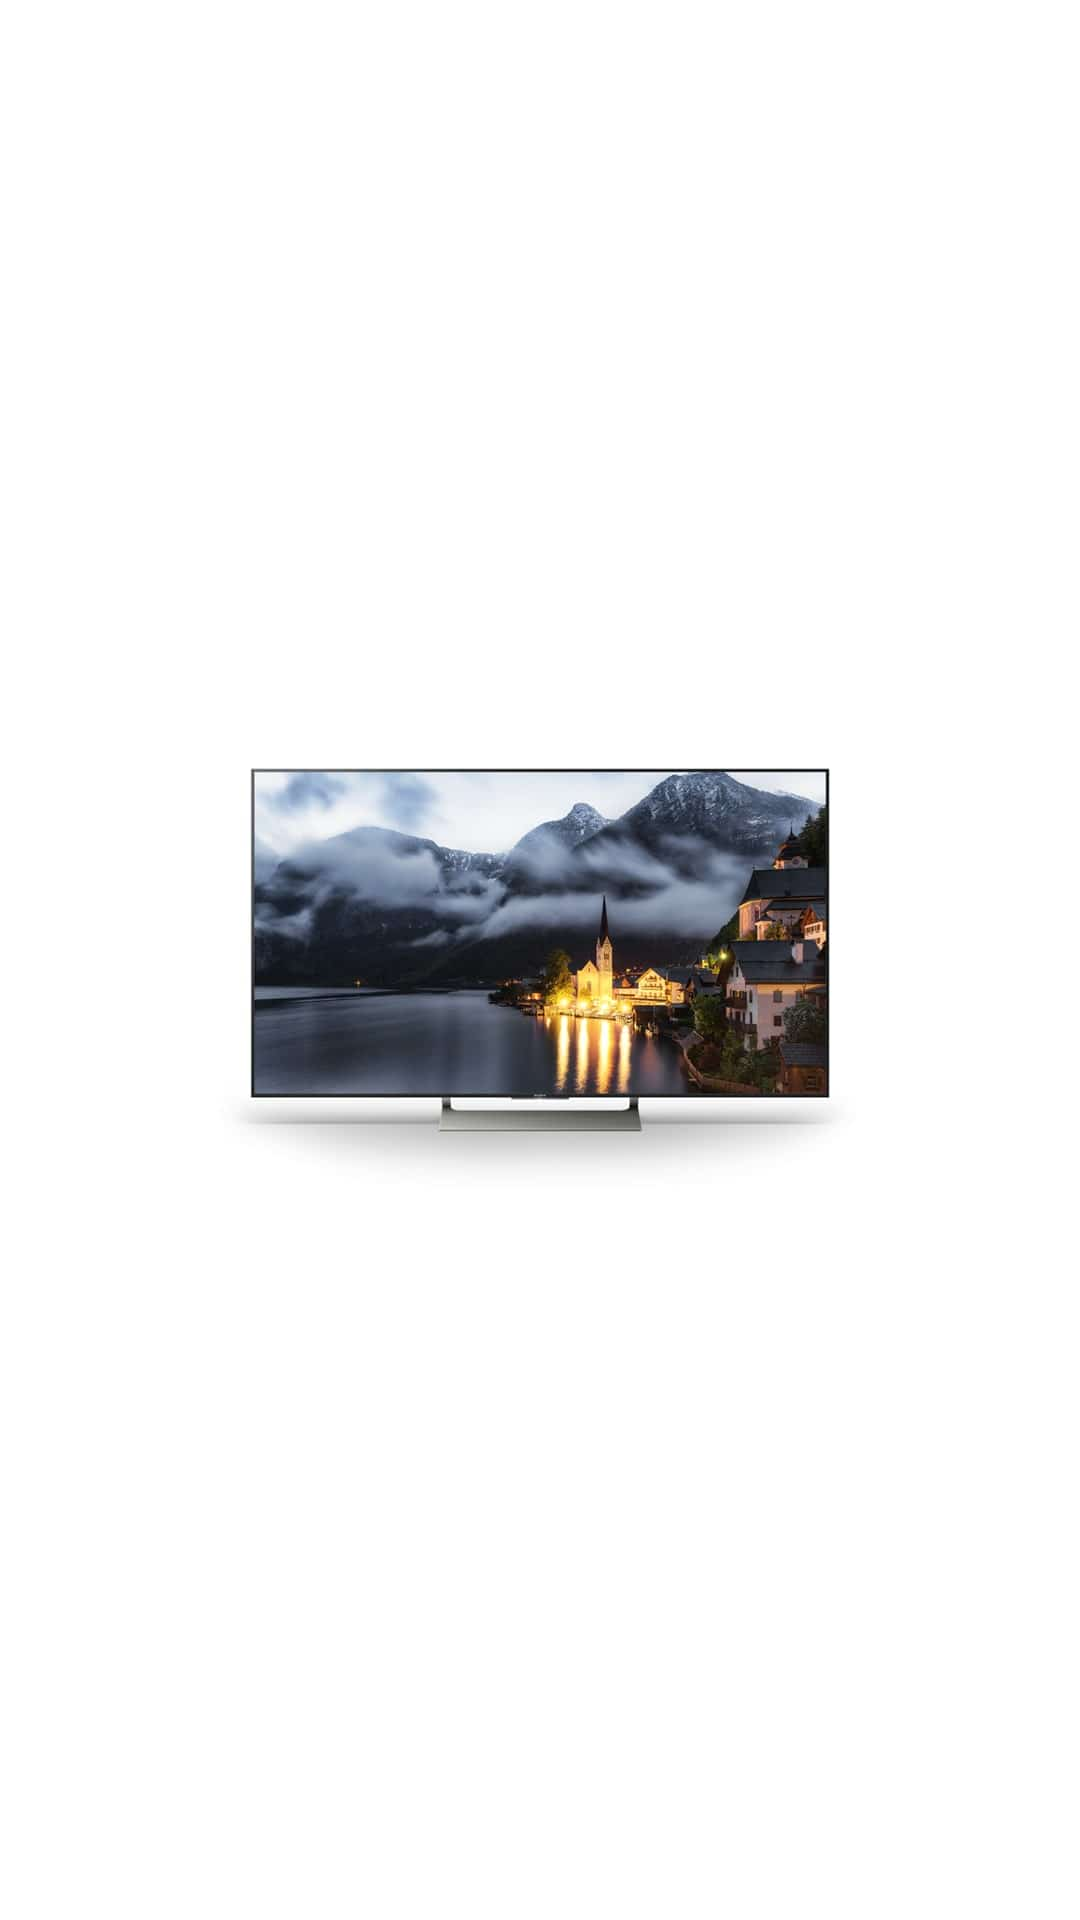 Paytm mall : Sony 164 cm (65) 4K (Ultra HD) LED Smart TV (KD-65X9000E) at 189990